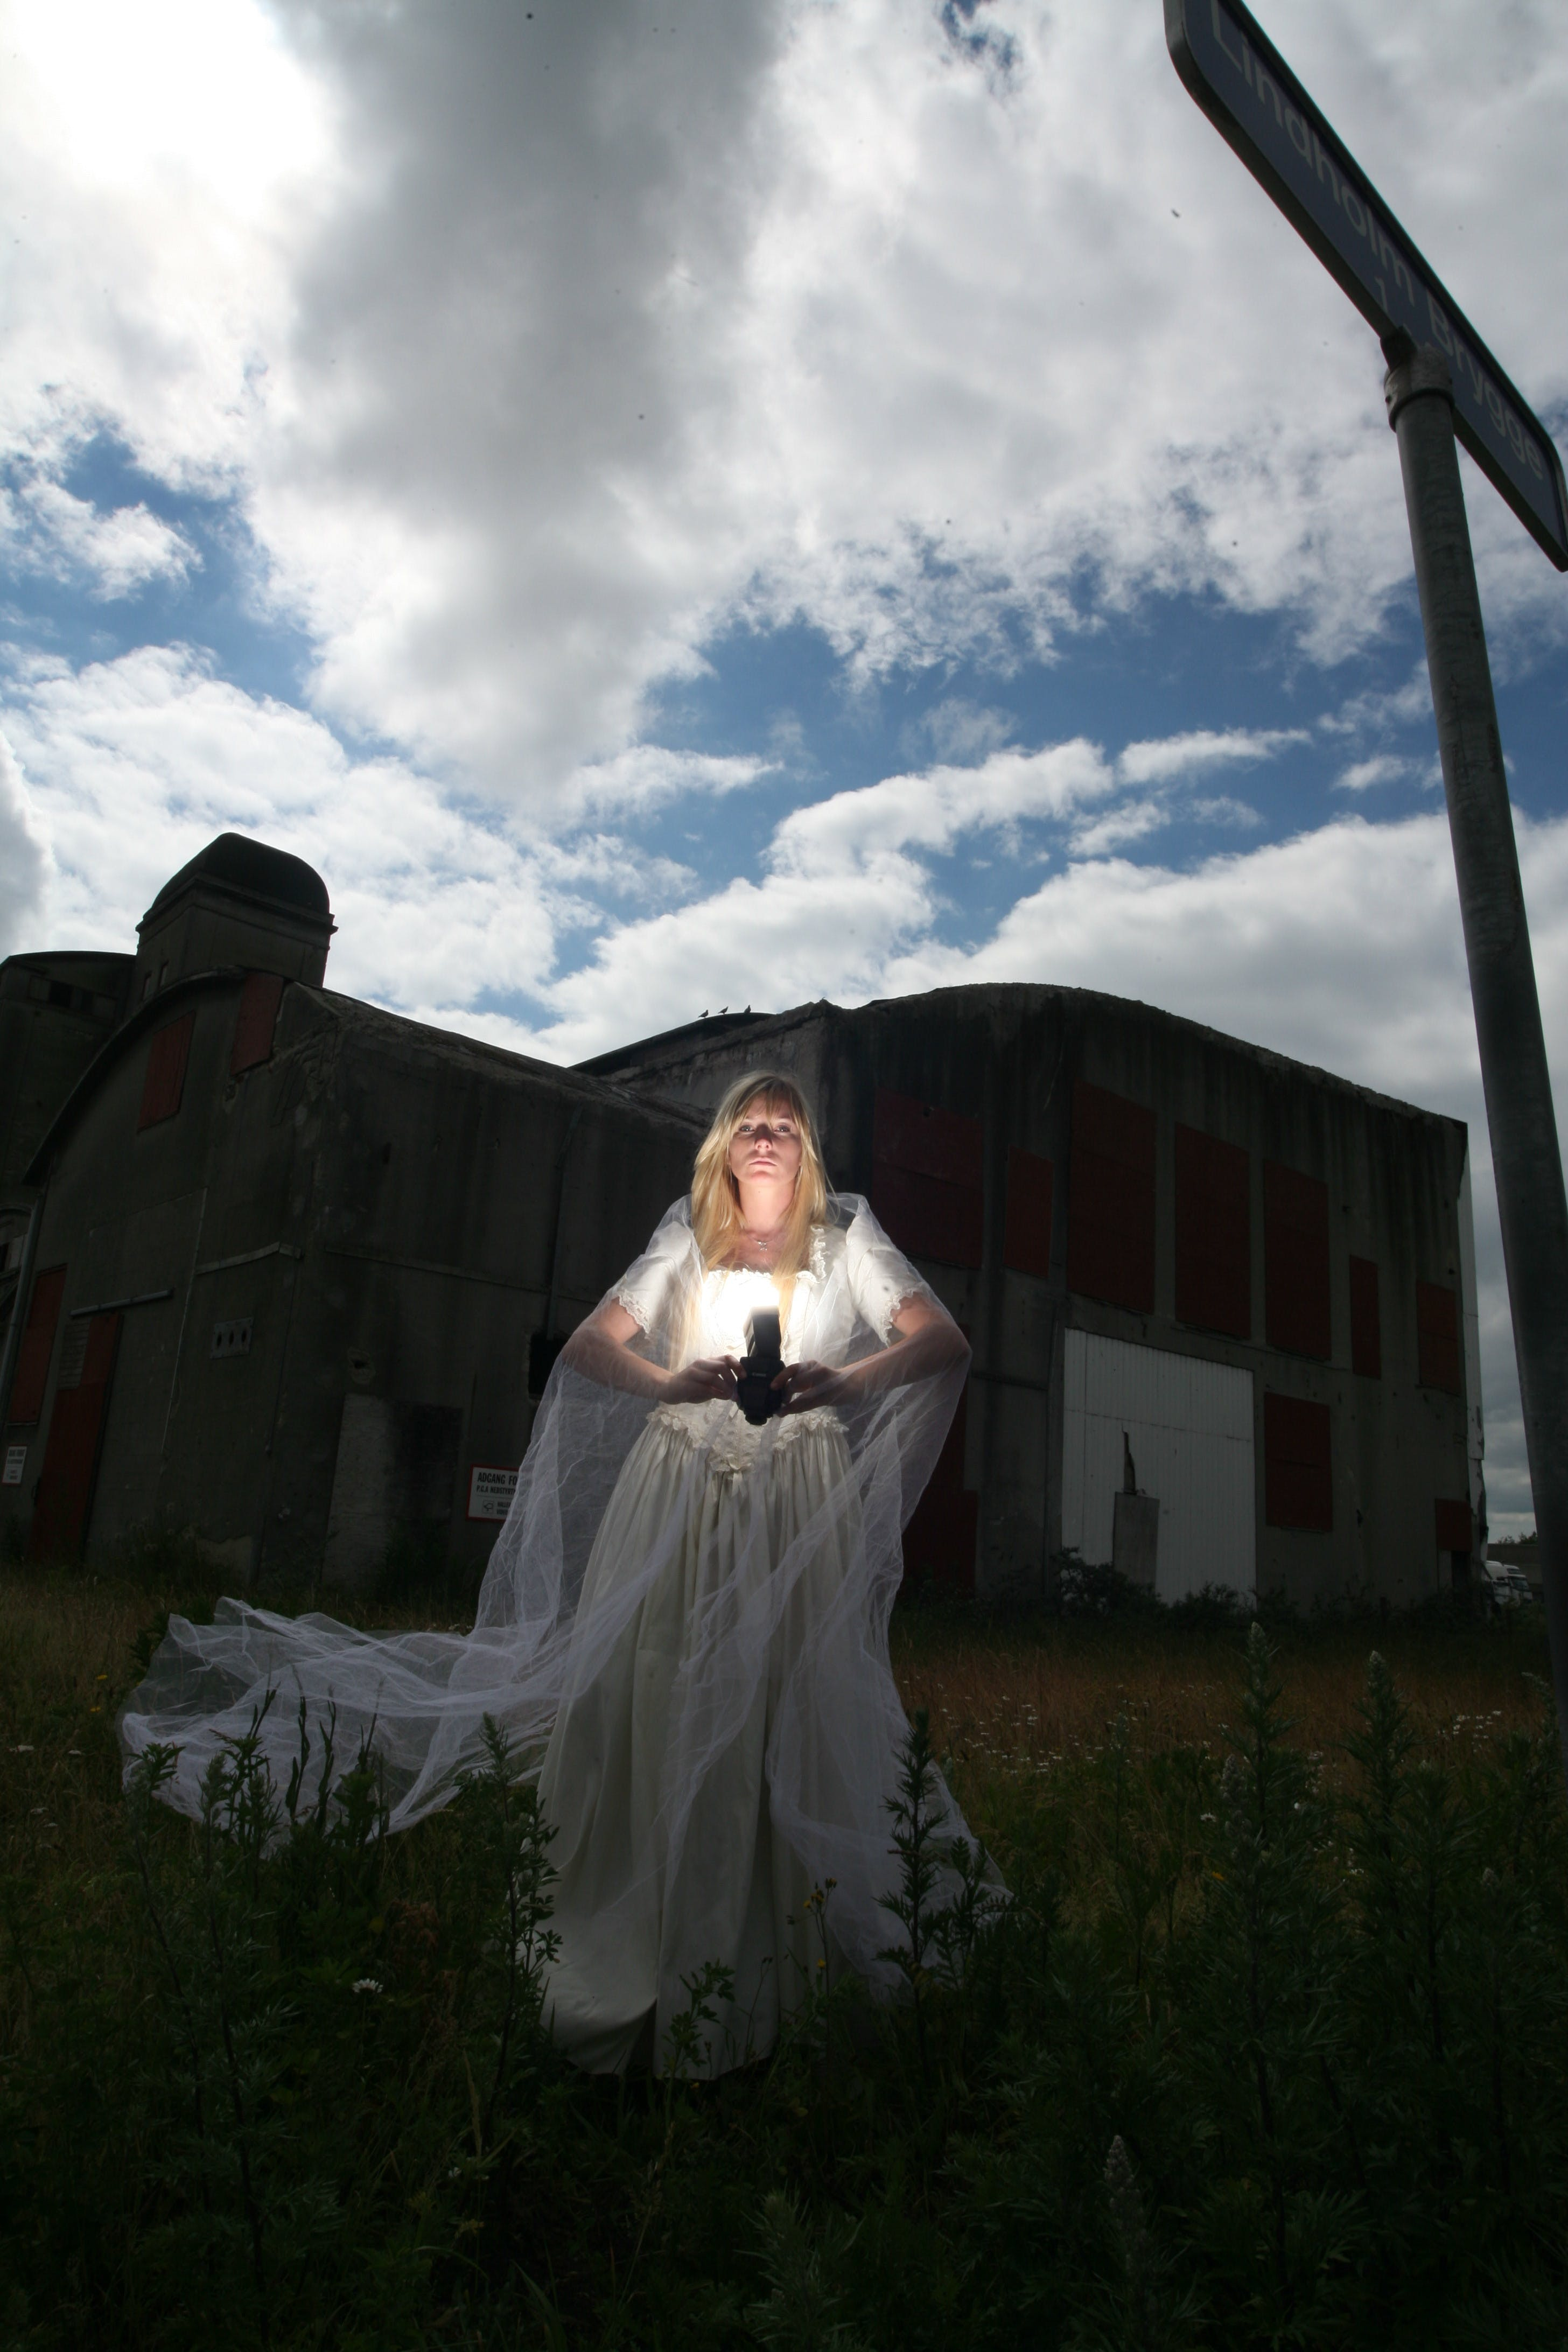 Woman in White Dress Holding Flashlight on Outdoors at Night